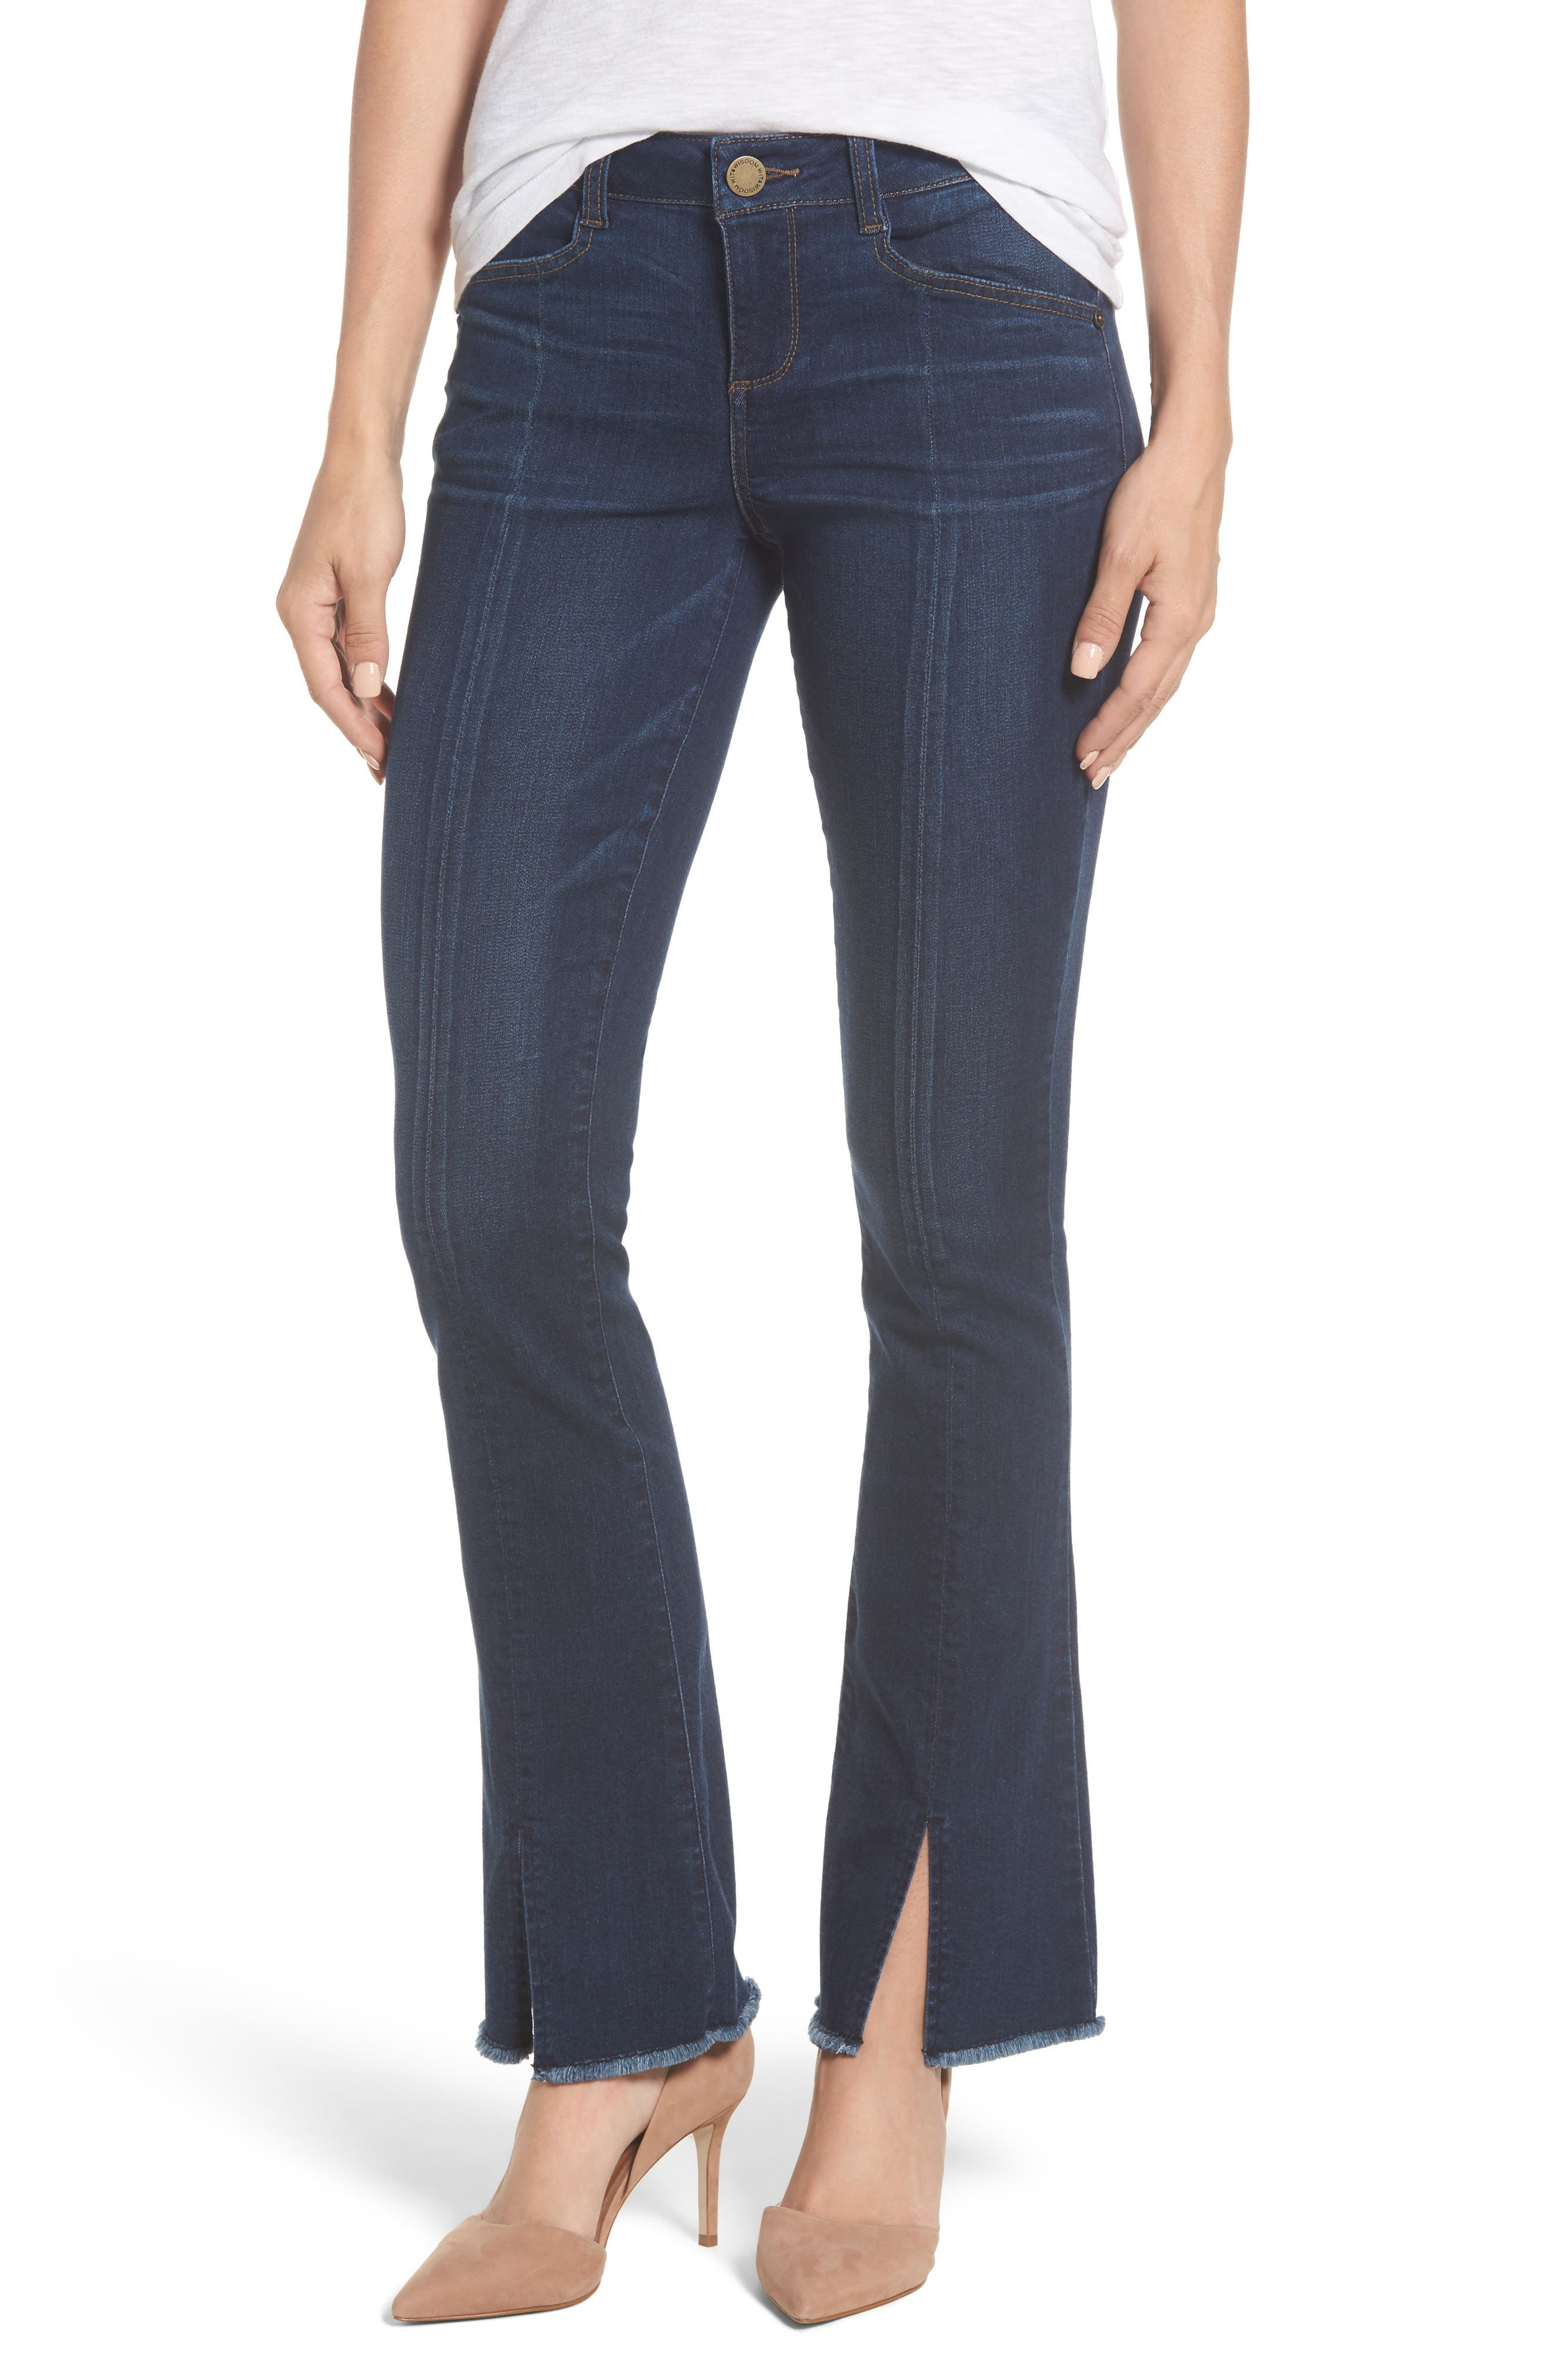 Main Image - Wit & Wisdom Itty Bitty Split Hem Bootcut Jeans (Nordstrom Exclusive) (Regular & Petite)